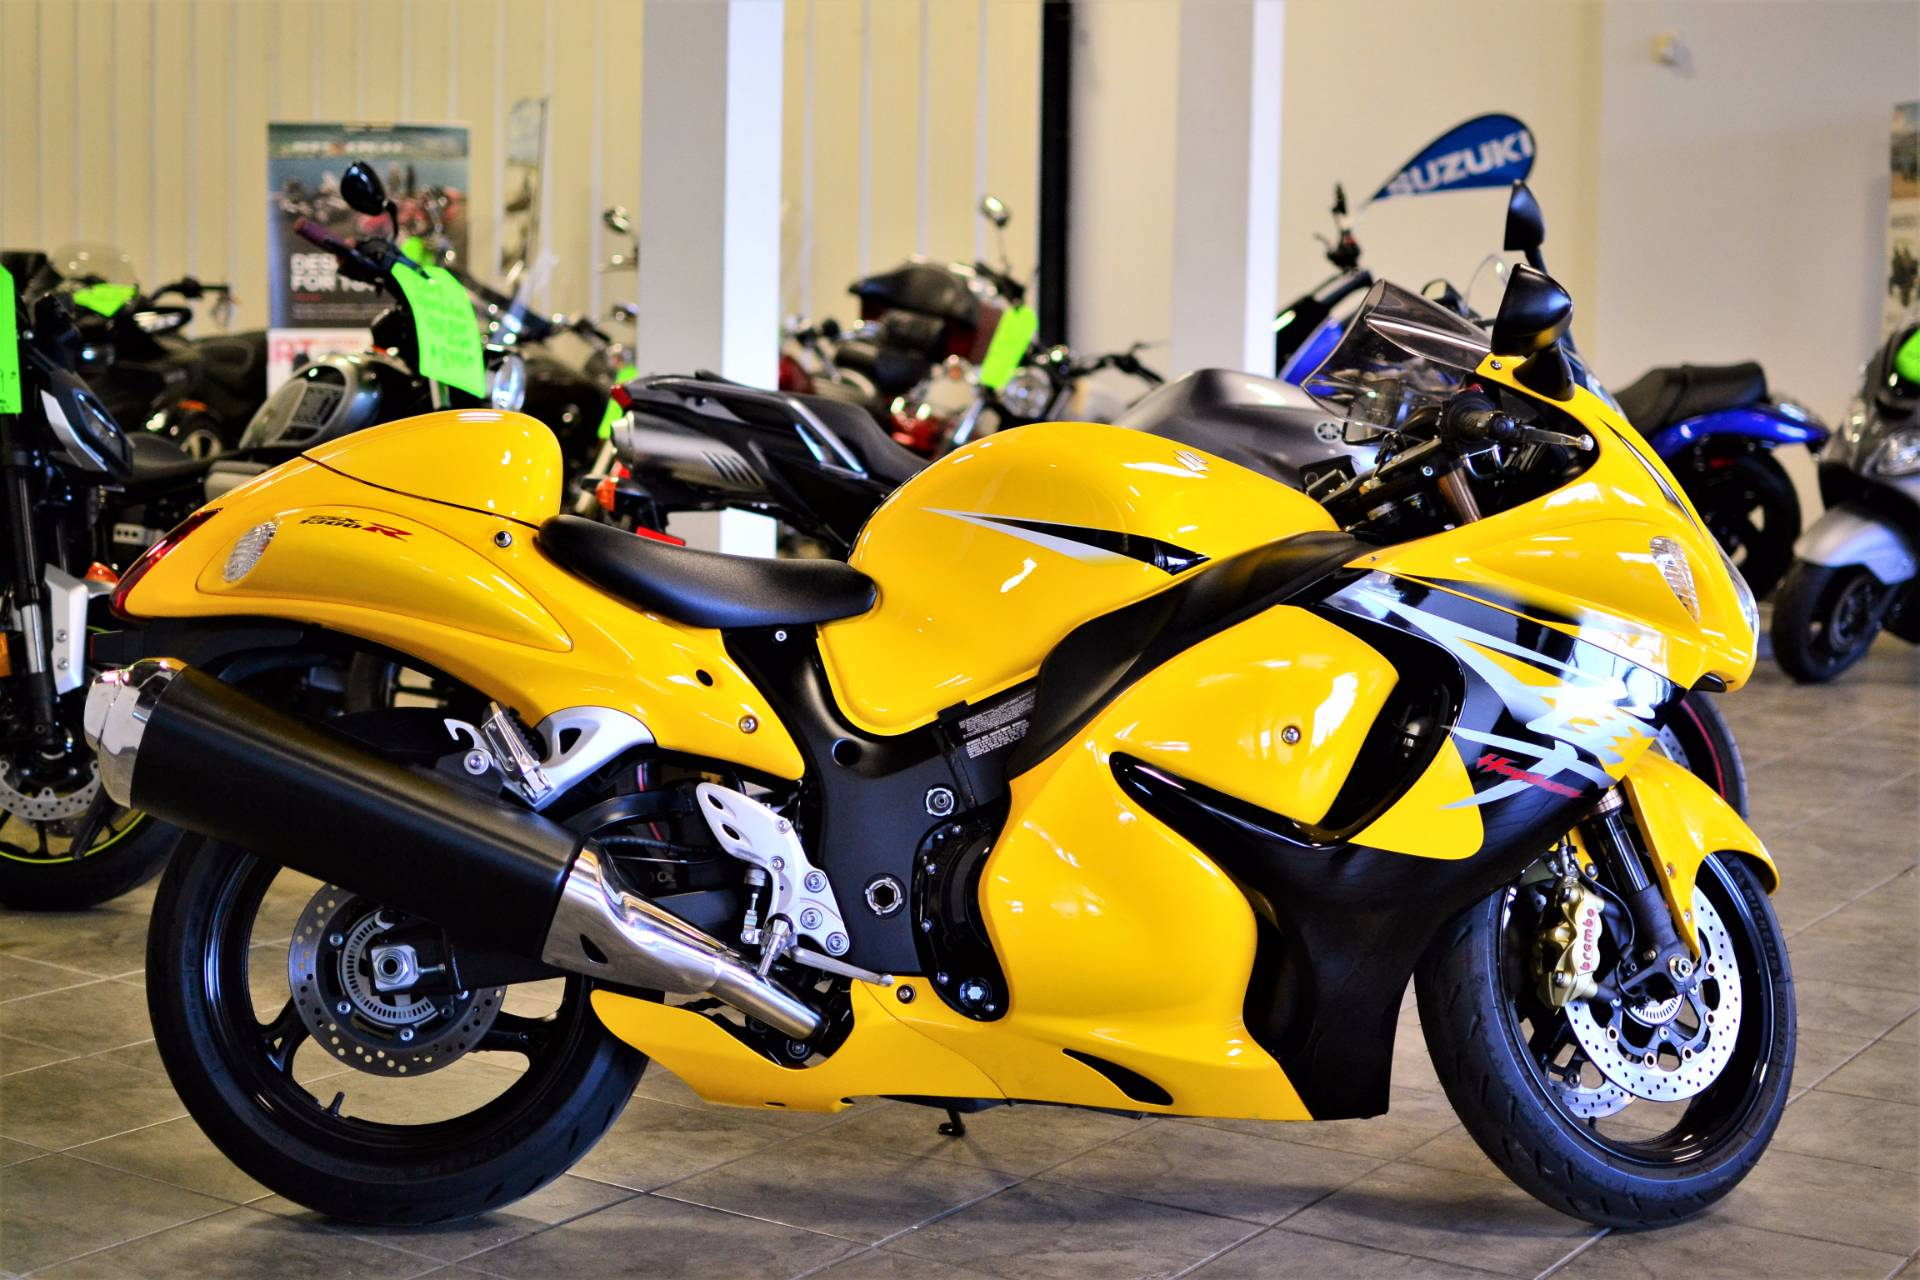 2013 Suzuki Hayabusa Limited Edition for sale 64586